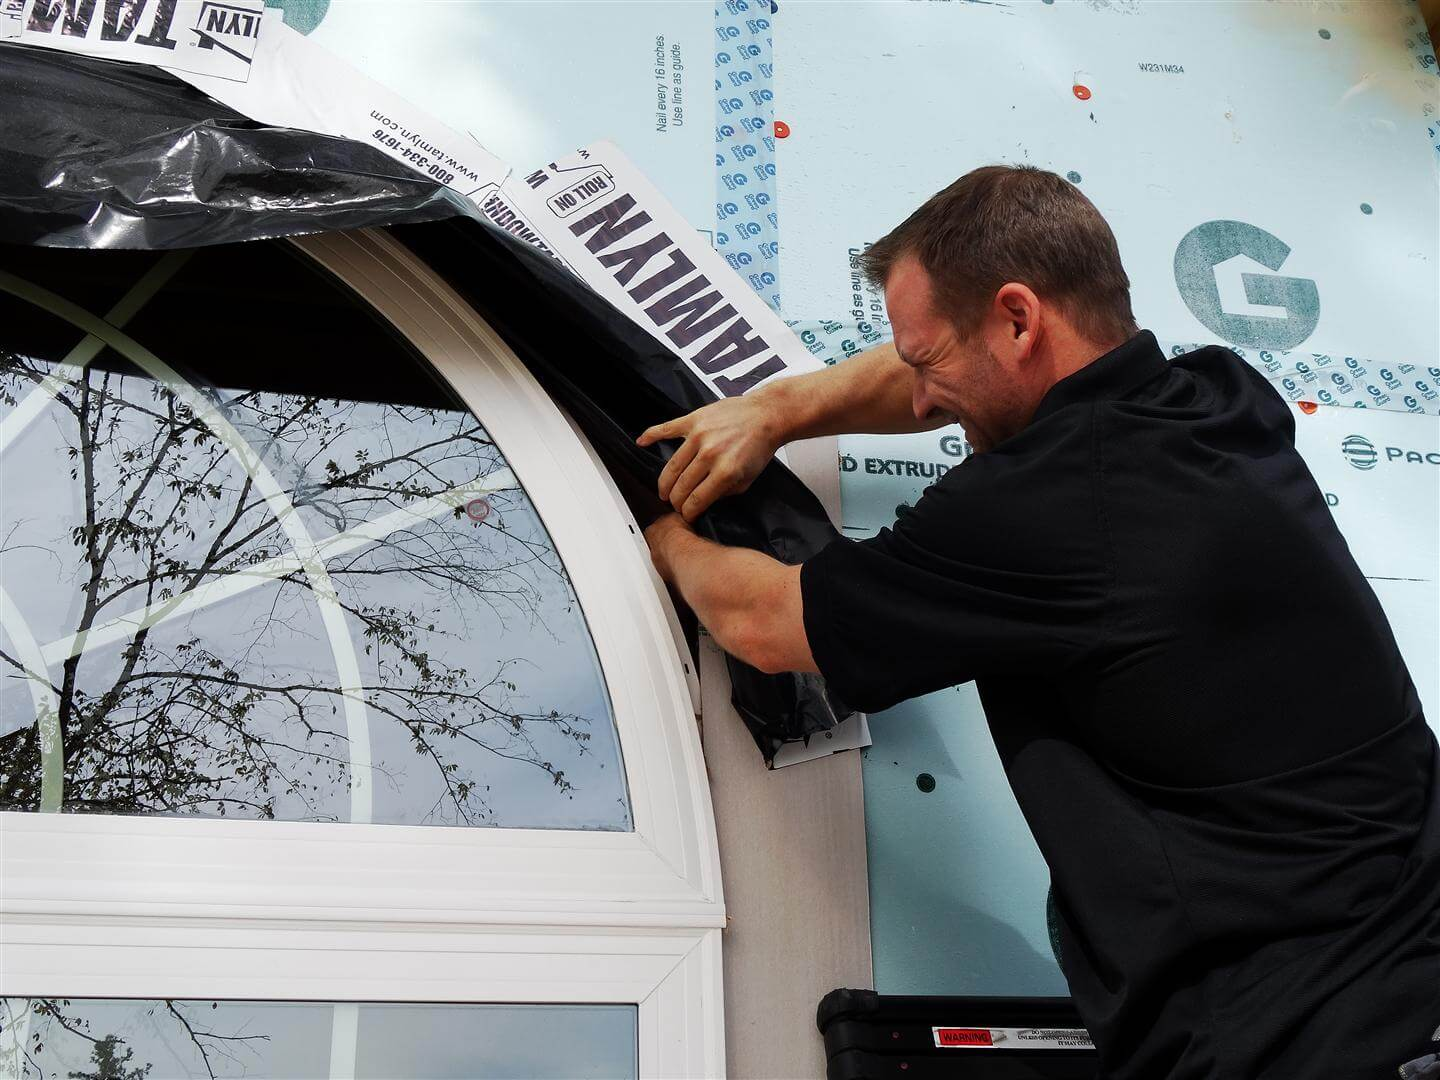 Arched window with the arch/flange not supported, not fastened, not caulked, not overlapping sheathing and not integrated into the water resistive barrier/drainage plane